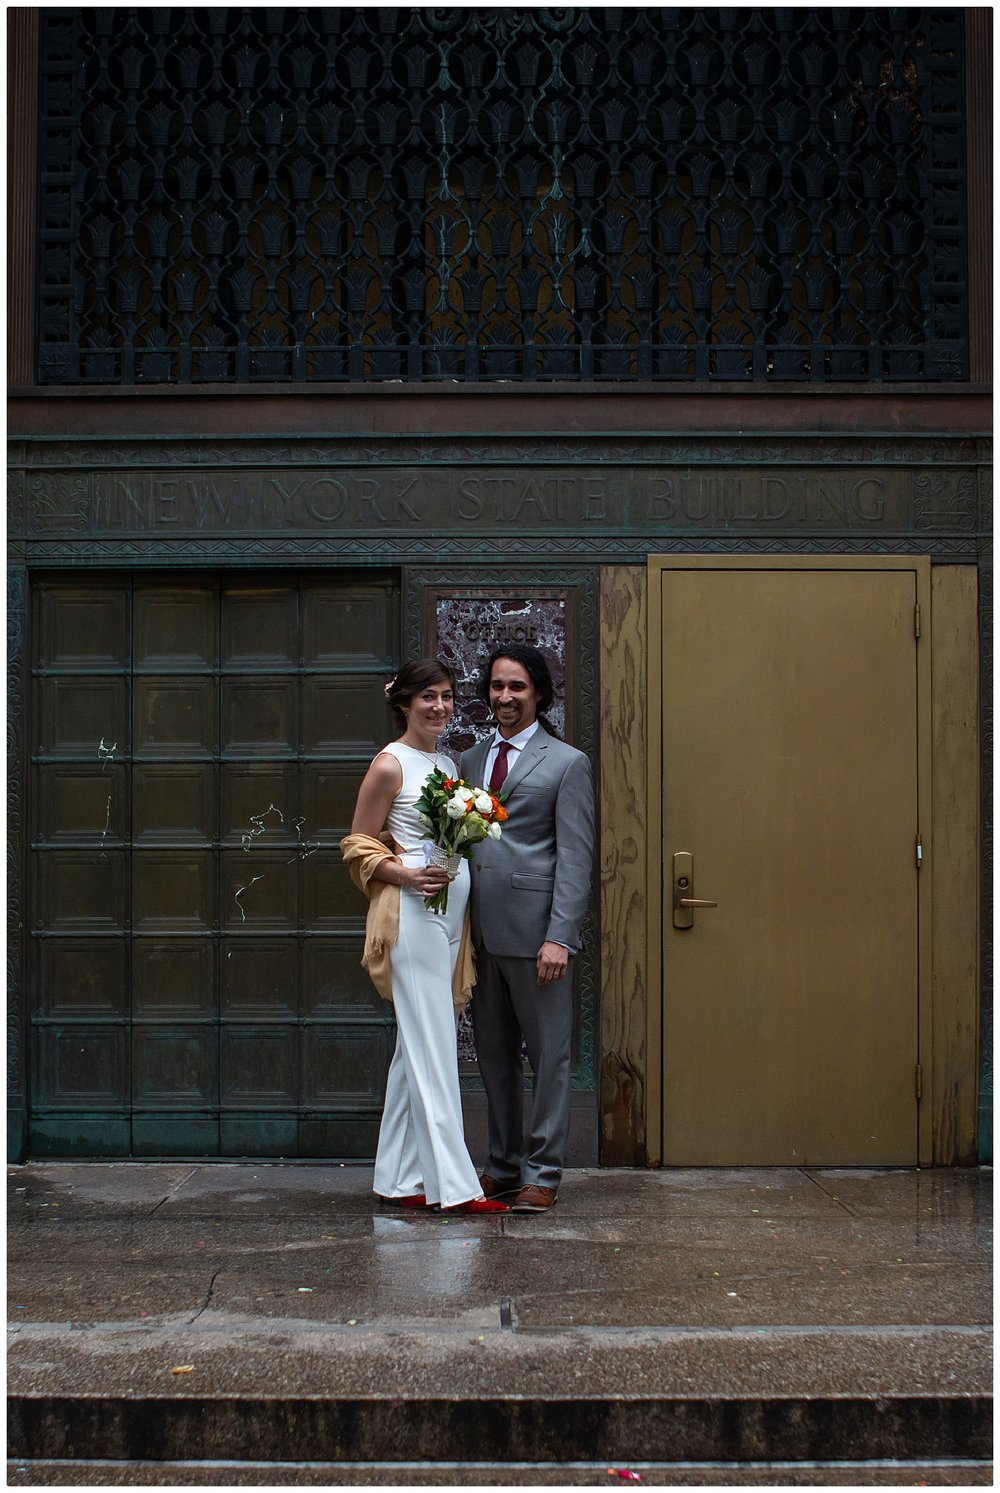 Kate-Alison-Photography-NYC-City-Hall-Courthouse-Elopement_0015.jpg